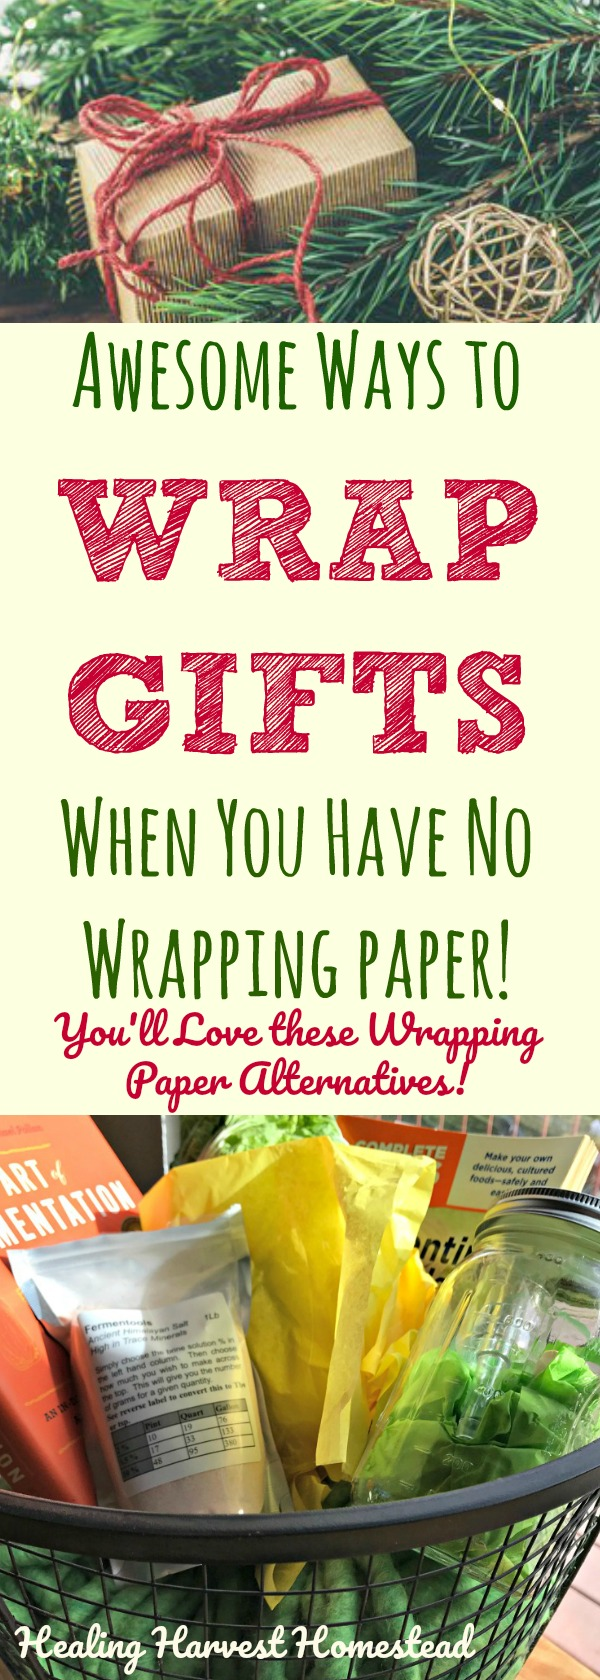 Have you ever run out of wrapping paper and needed to get the job done? Are you just tired of wrapping paper waste? Or the COST? Egads! Here are ways to wrap presents when you don't have any wrapping paper handy! These alternatives to using gift wrap and wrapping paper save money, are creative, and I bet your friends & family will love these best! In a present wrapping jam? Find out how to wrap gifts without paper!